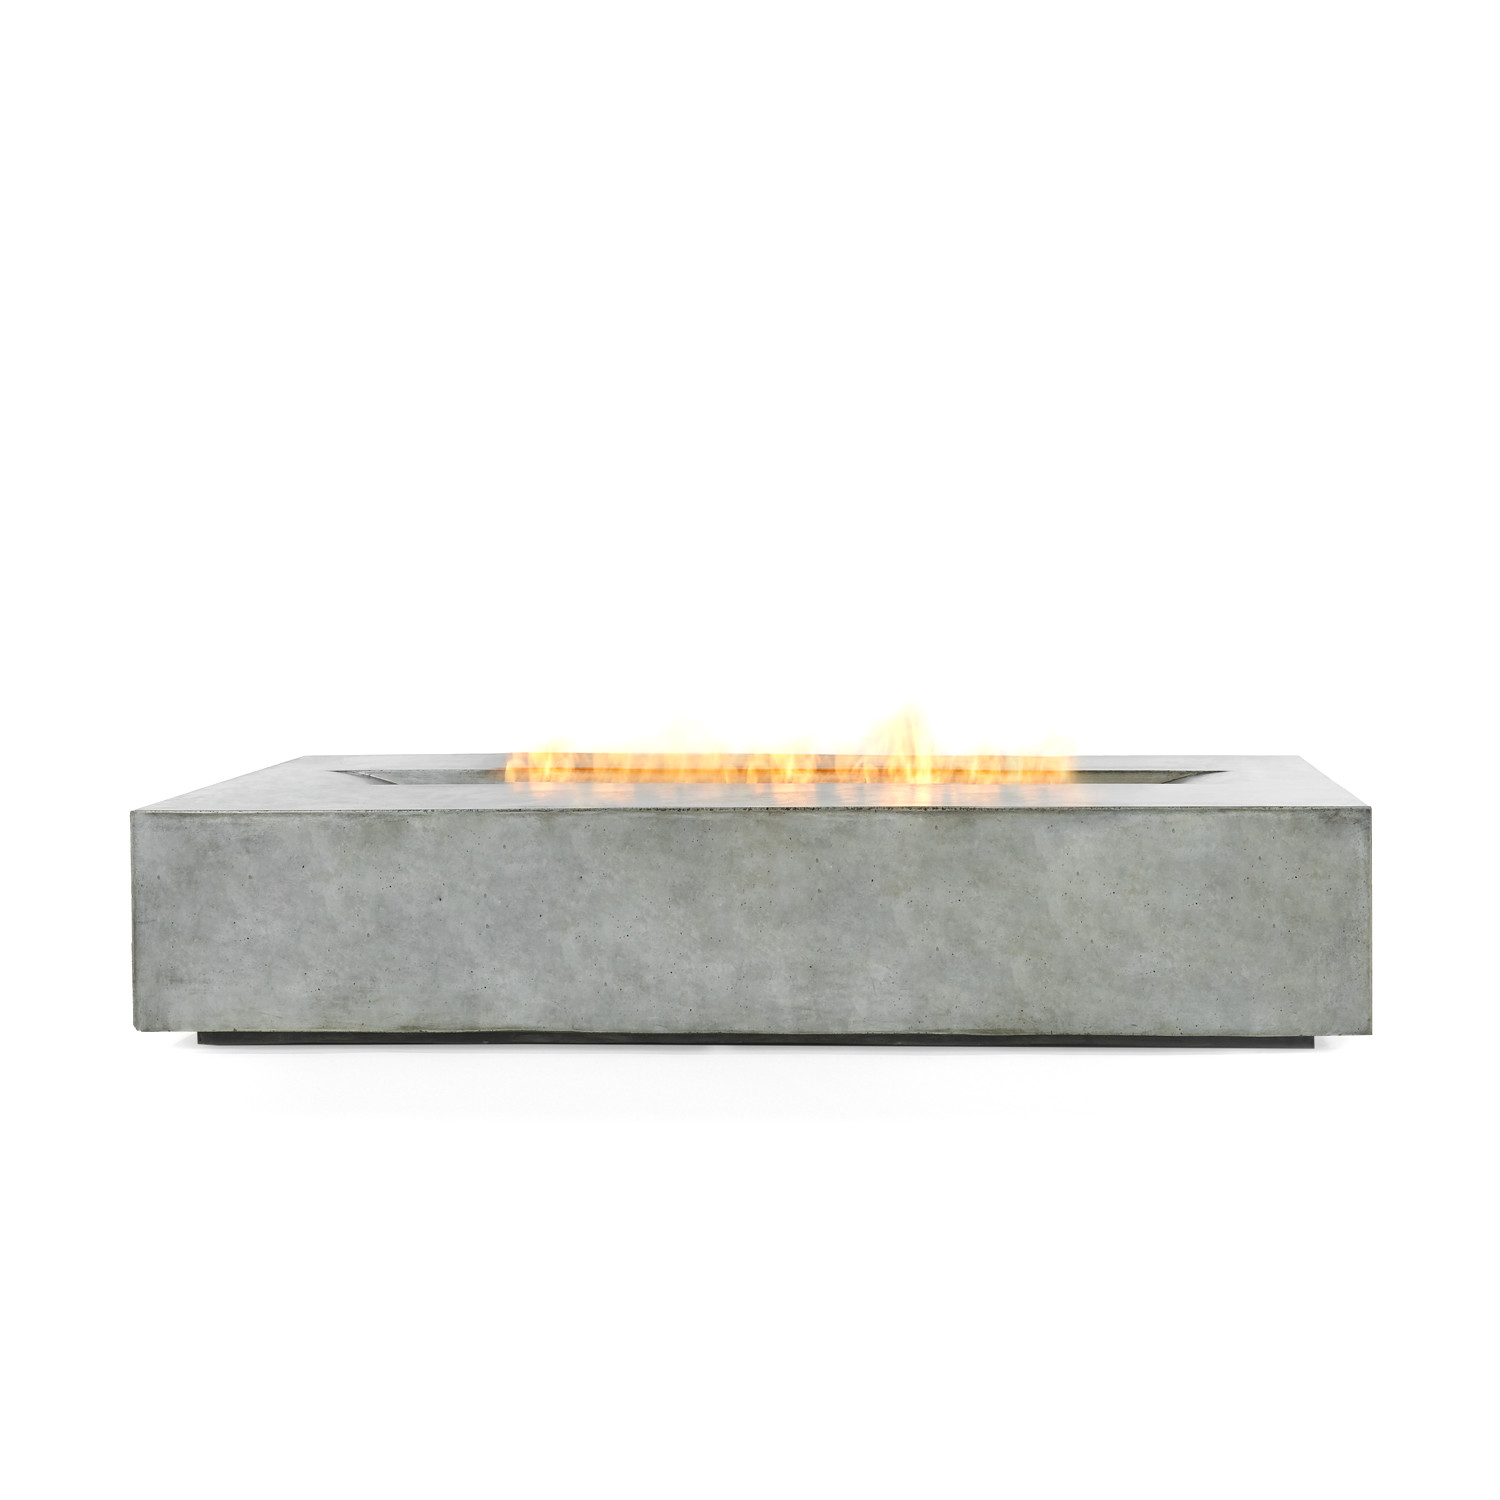 Brown Jordan Fires Flo Fire Pit Coffee Table Natural